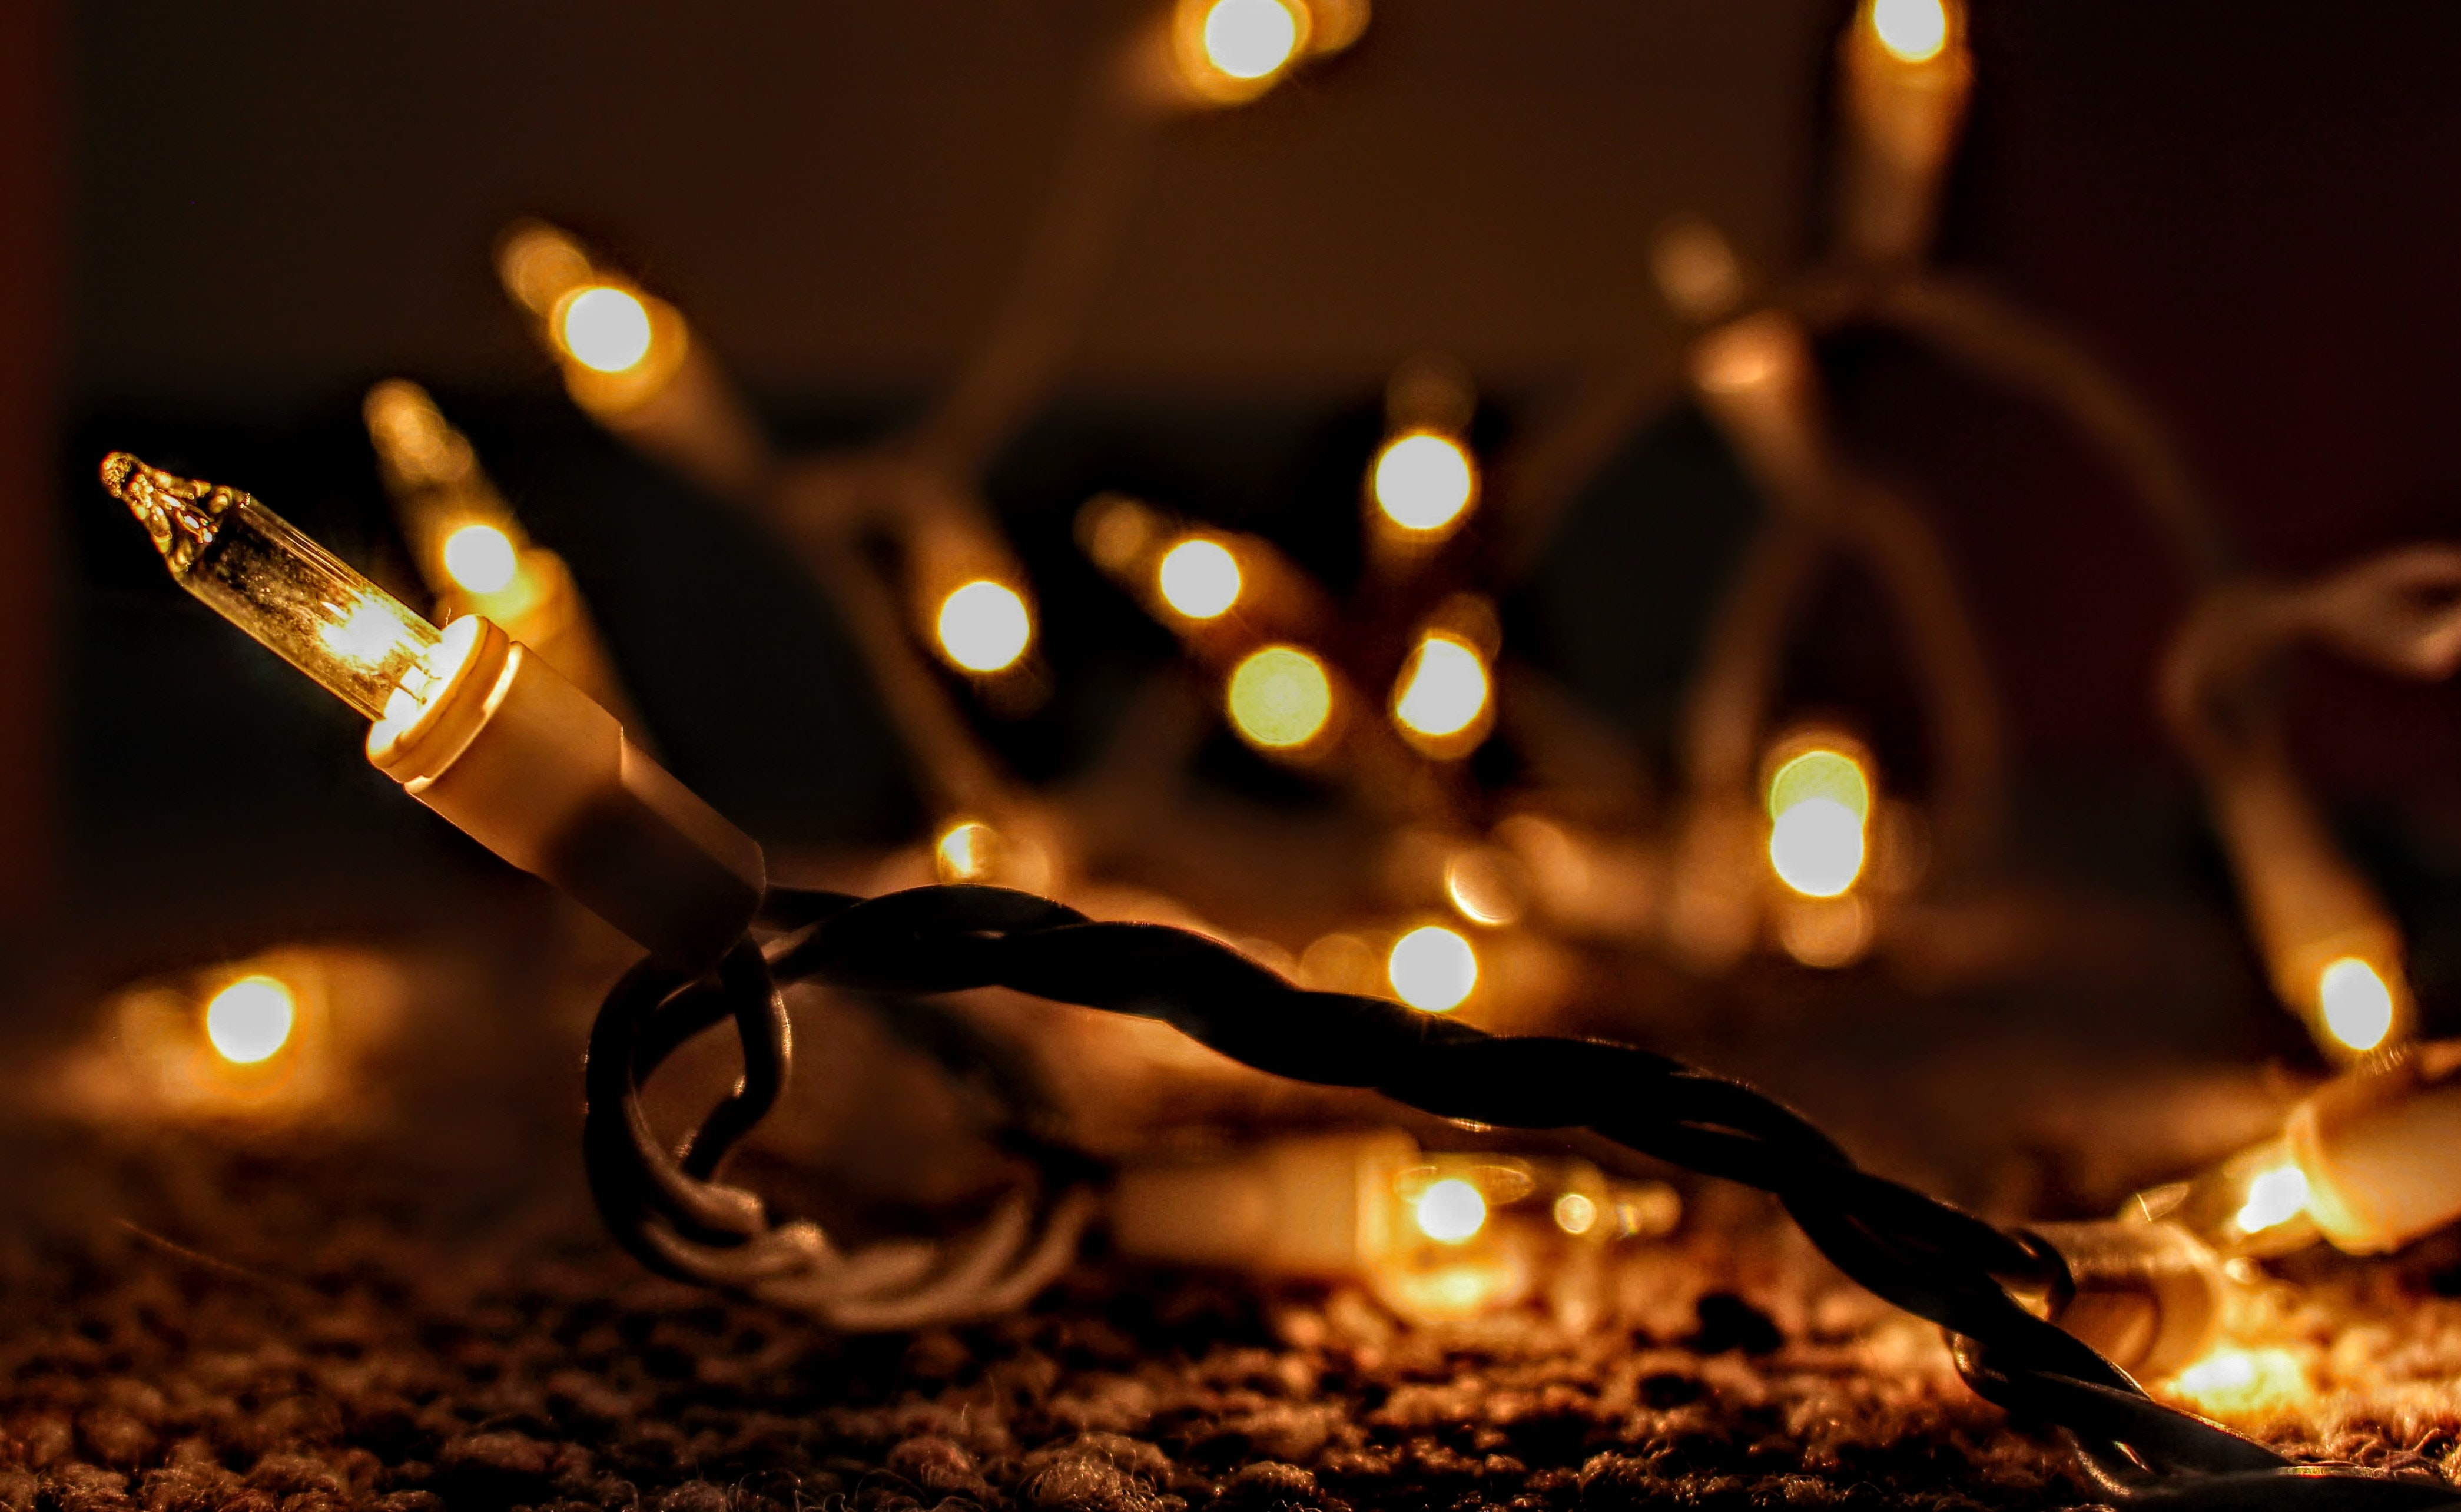 Time Lapse Photo Of Lights 183 Free Stock Photo